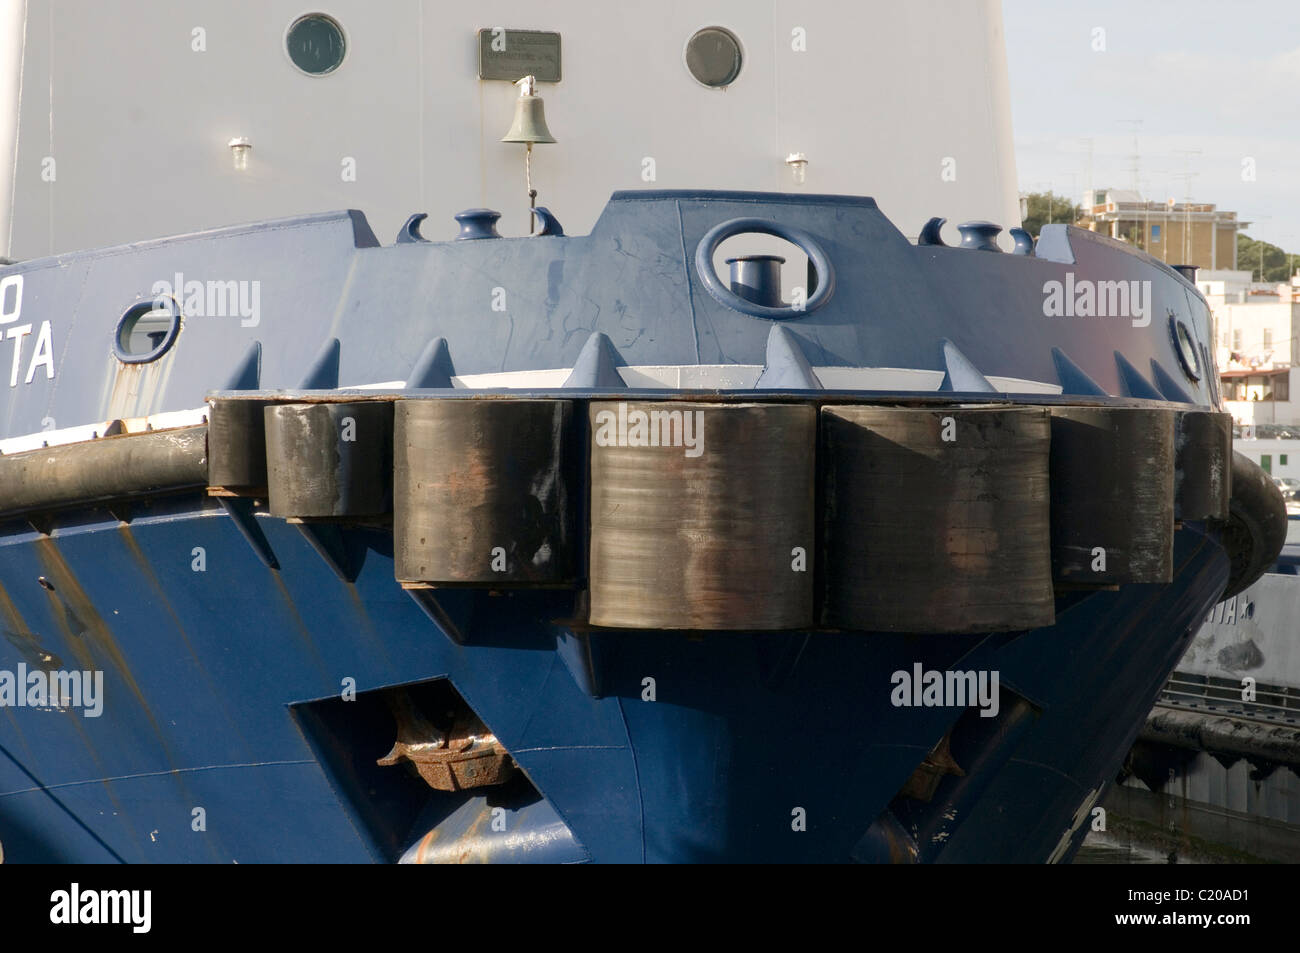 tug boat boats tugs tugboat tugboats rubber bumper bumpers nudge push force forces newton maneuver maneuvering harbour - Stock Image